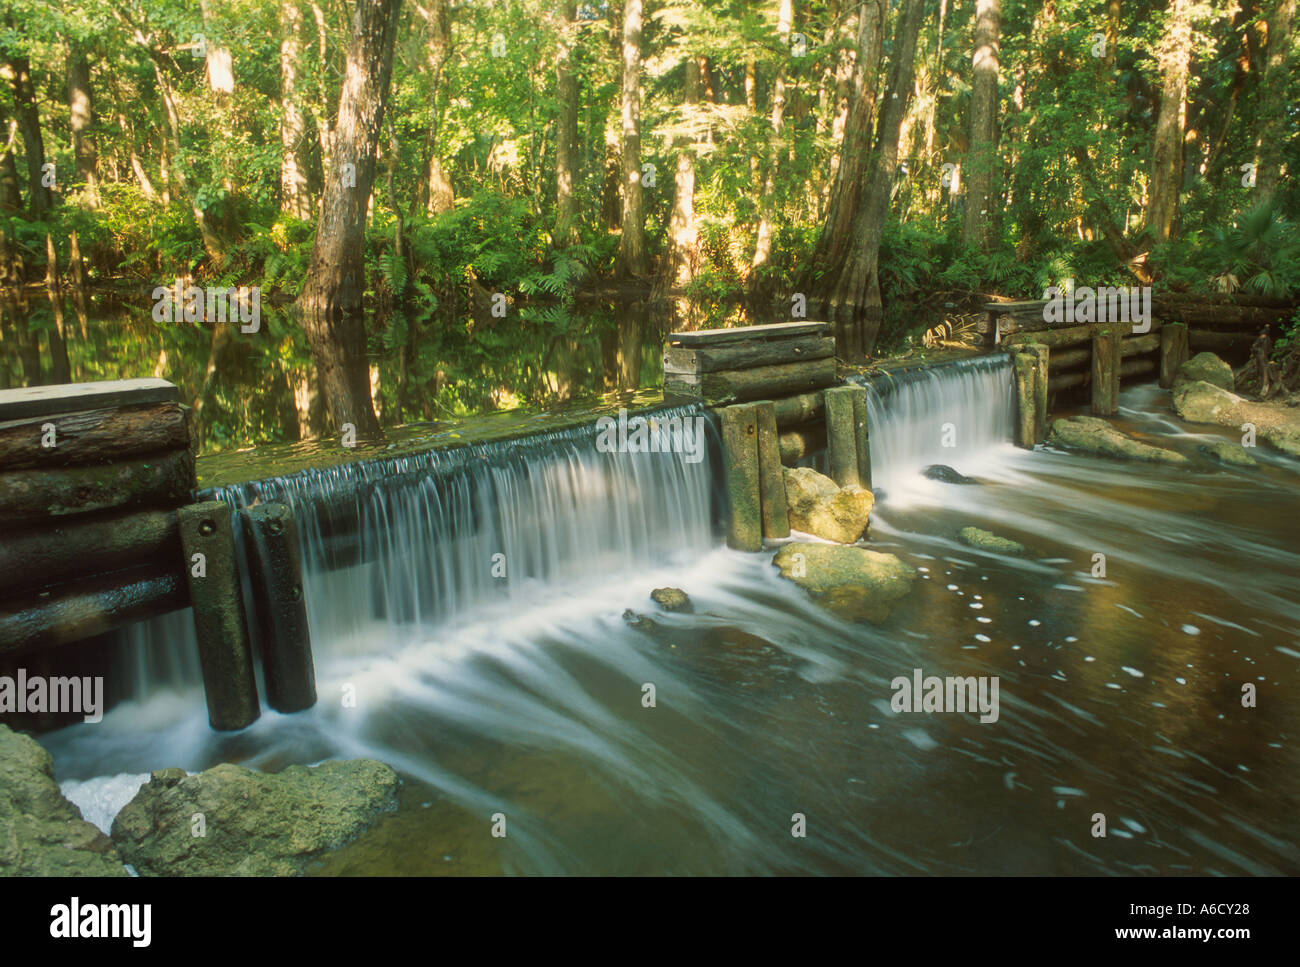 Martin County Loxahatchee River waterfall at damn in tropical forest wild and scenic river Florida - Stock Image